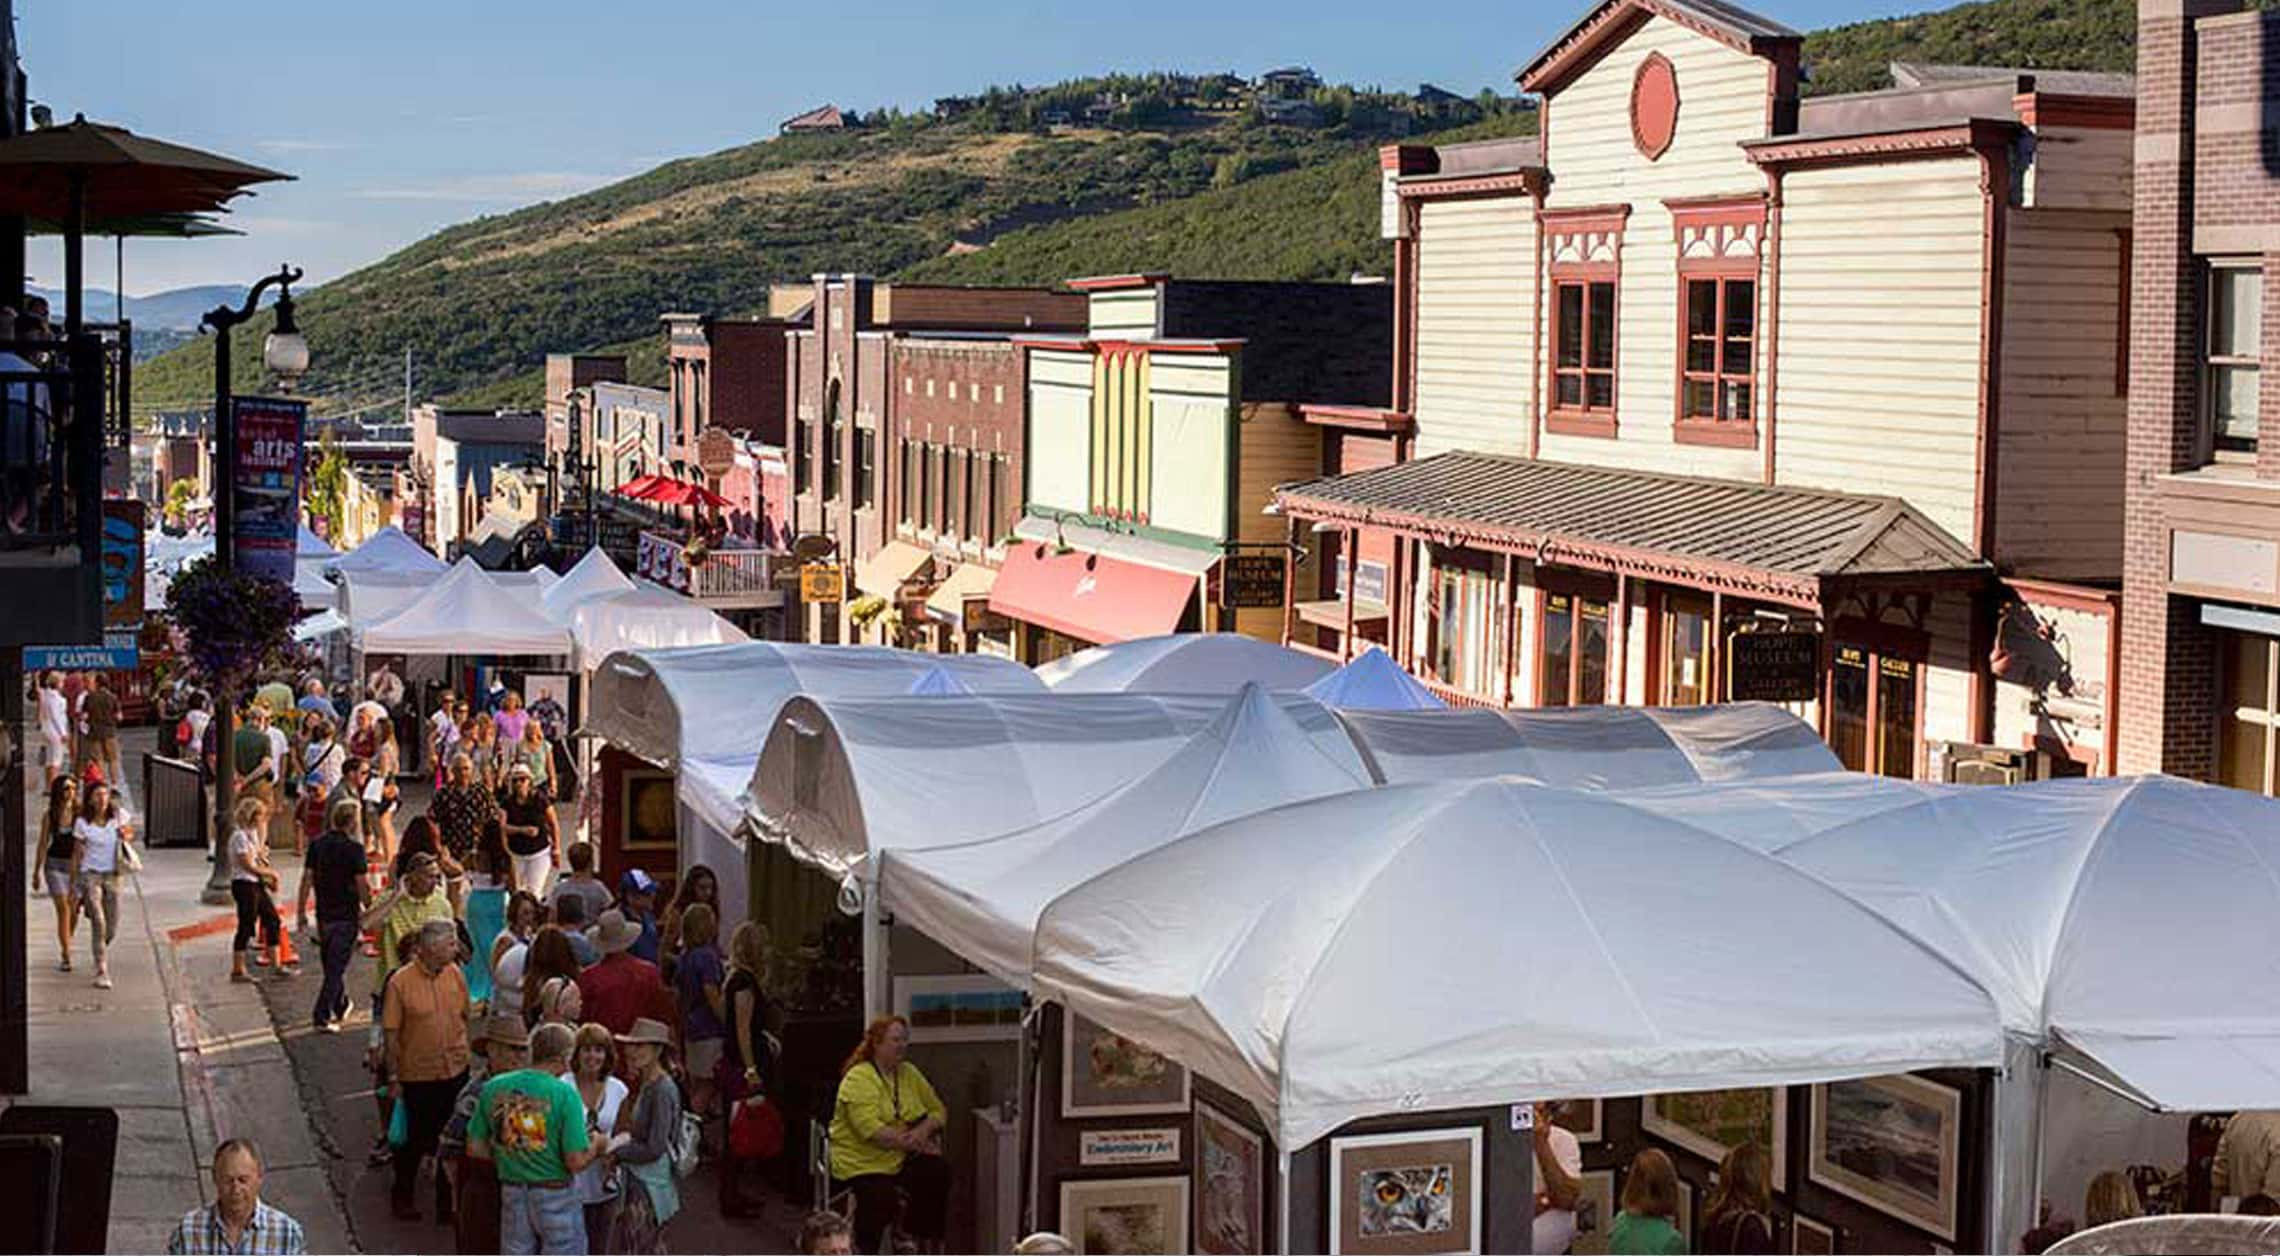 Photo Credit to: https://historicparkcityutah.com/events/49th-annual-park-city-kimball-arts-festival